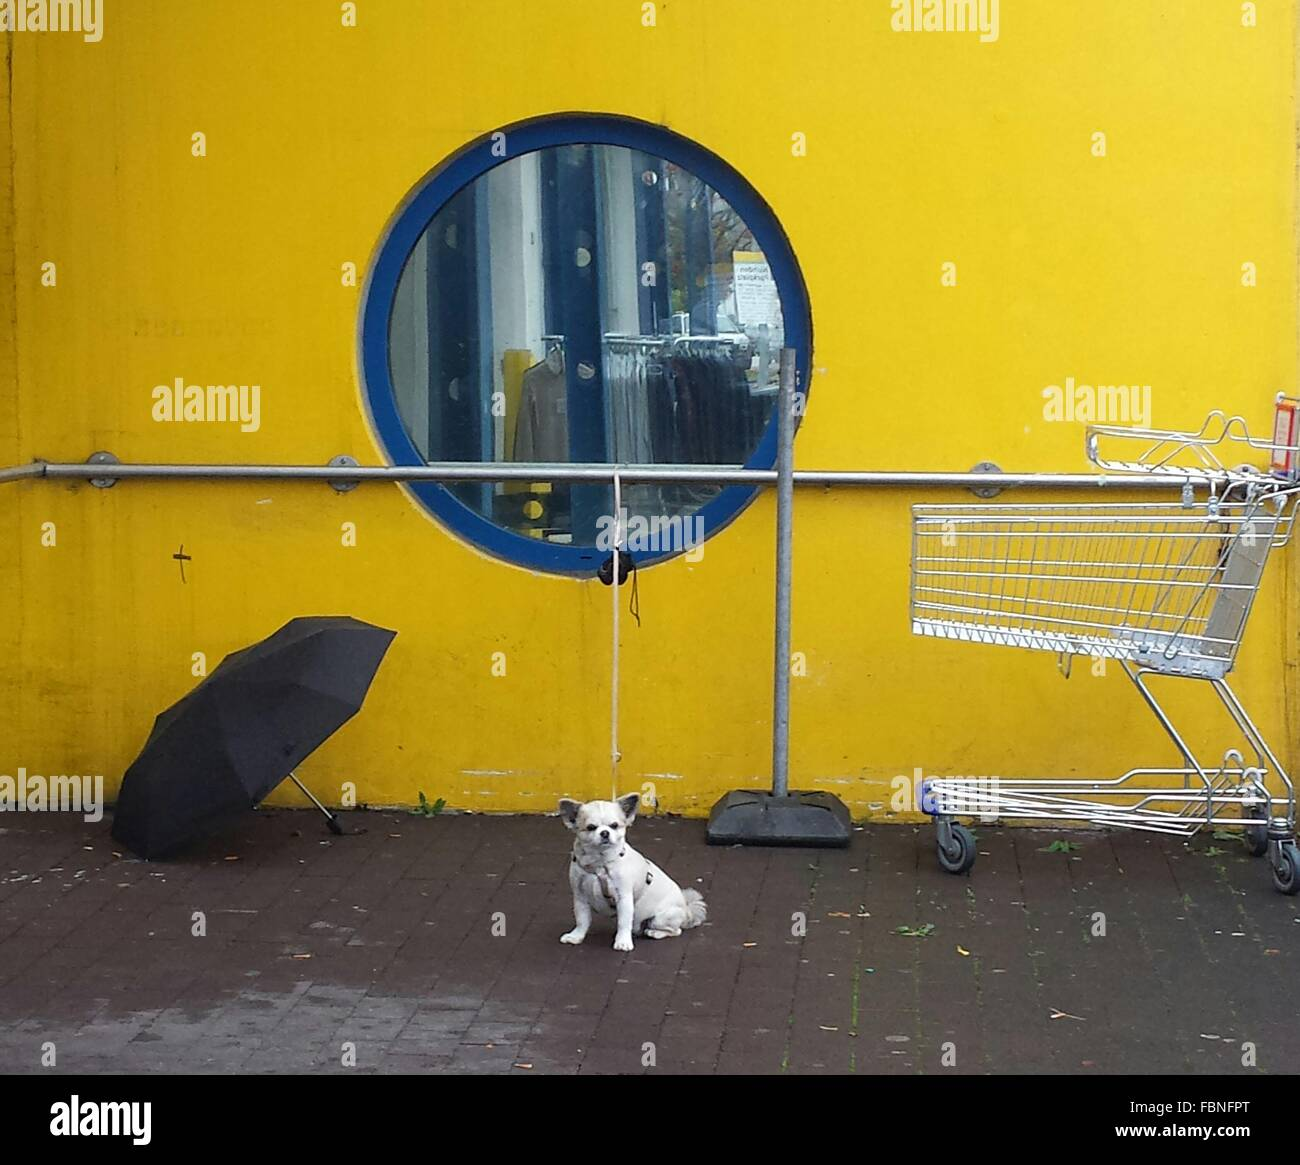 Dog Sitting Outside A Shopping Mall - Stock Image